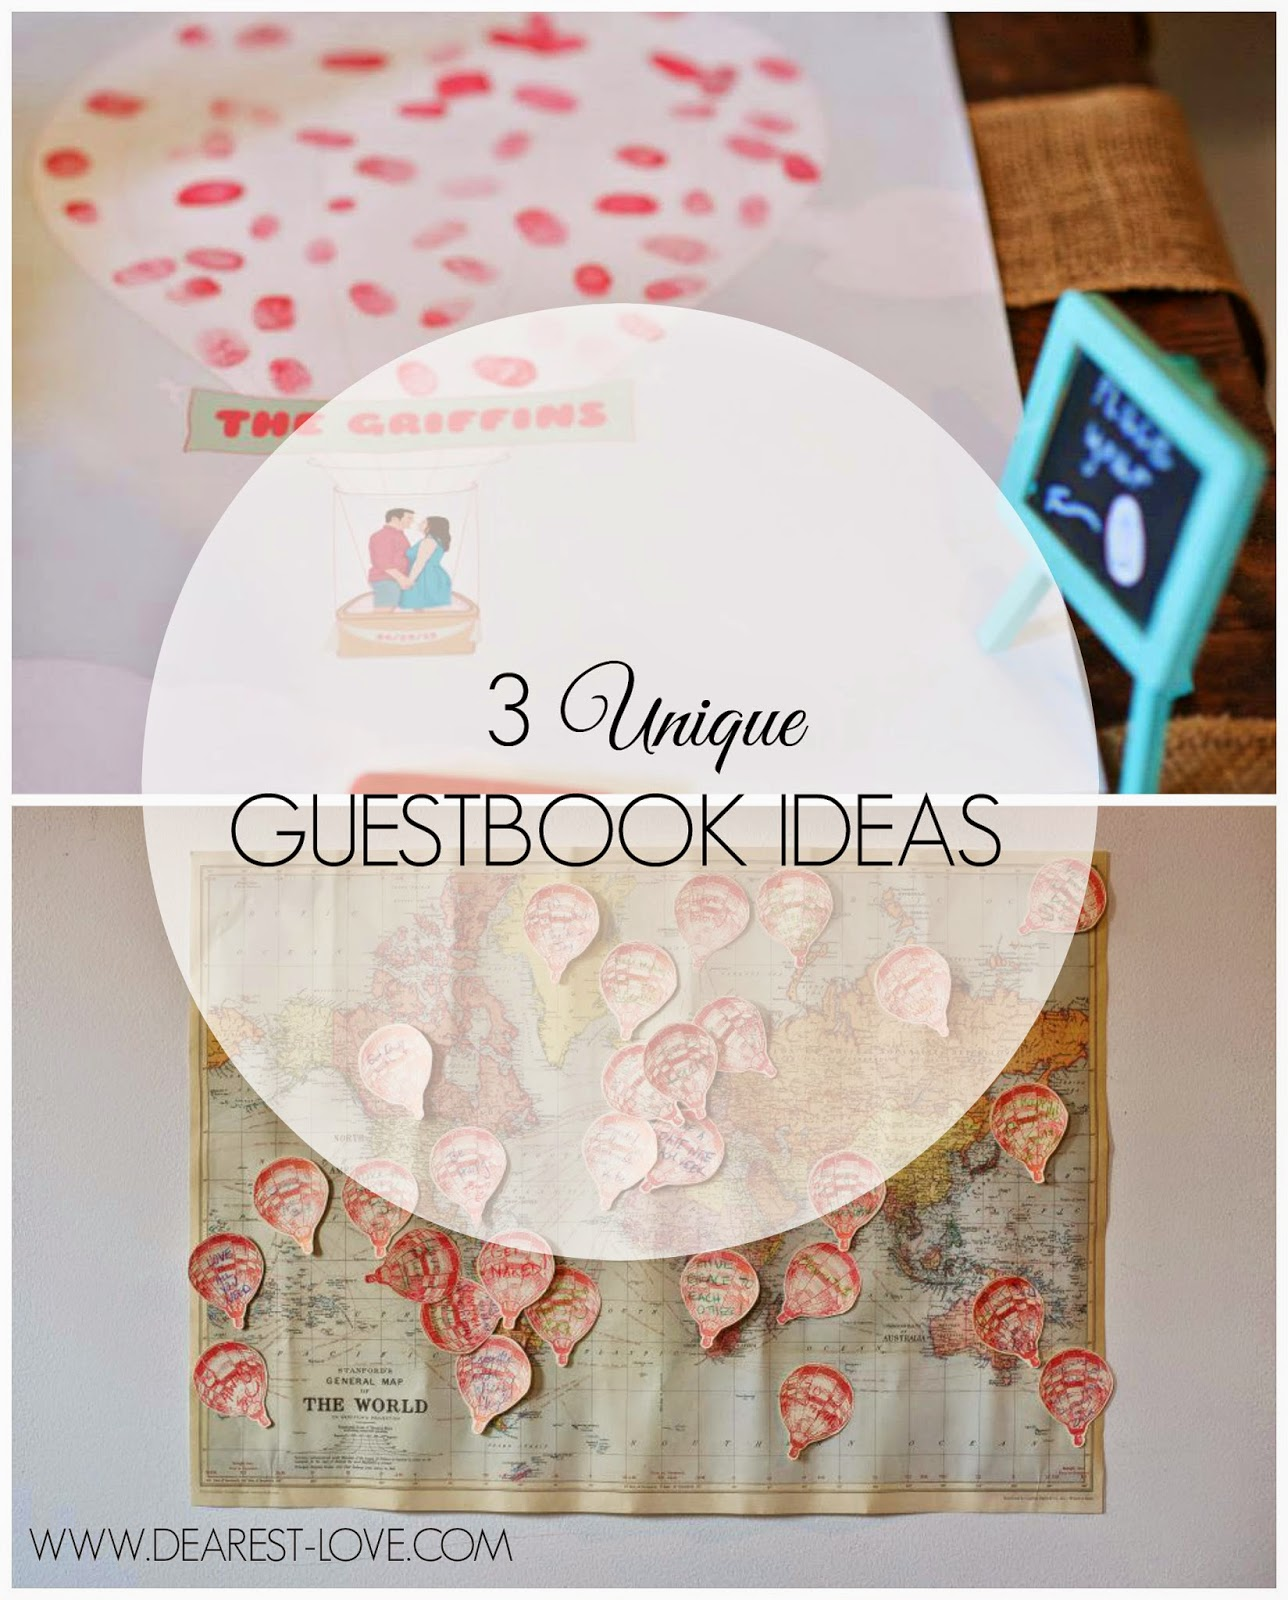 Our wedding 3 unique guestbook ideas gold and bloom im so glad i chose to do all three because i absolutely love them and they are all now a sweet part of our home i love that they arent just collecting gumiabroncs Image collections